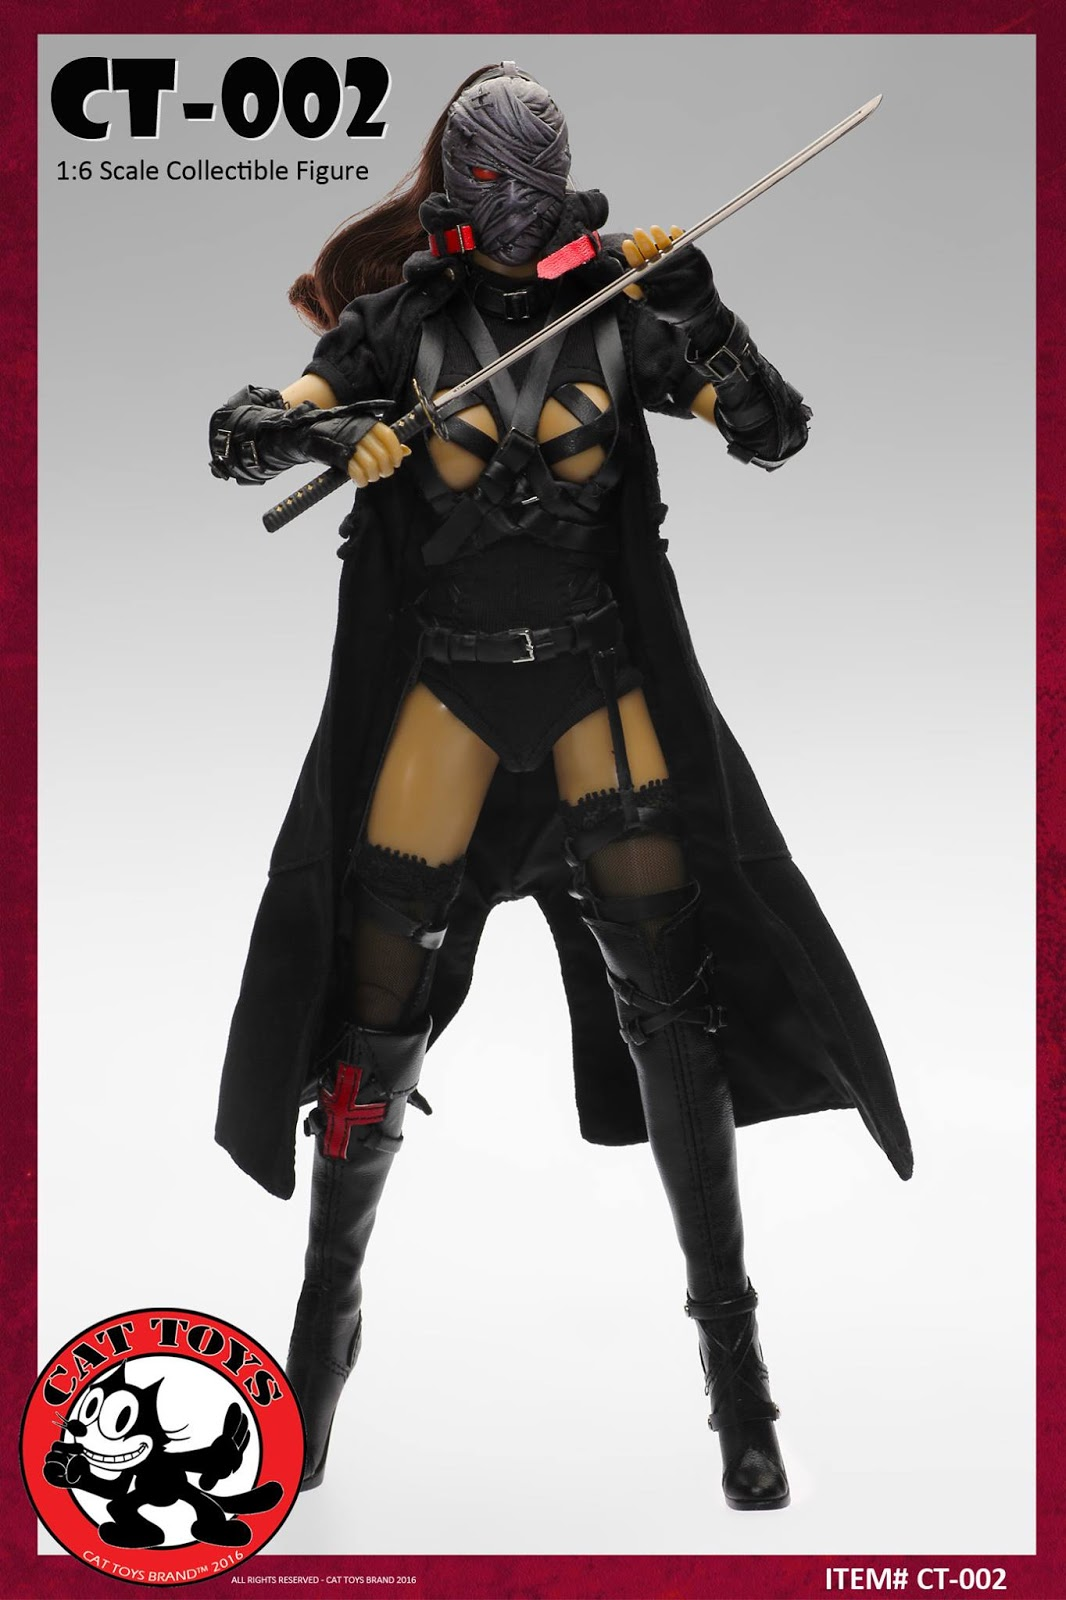 Toyhaven Cat Toys 16 Scale Dark Mourner 12 Inch Female Action 1 6 Interestingly Enough First Figure Released Looked A Lot Like Certain Harley From The Upcoming Film Which Was Previewed In My Previous Toy